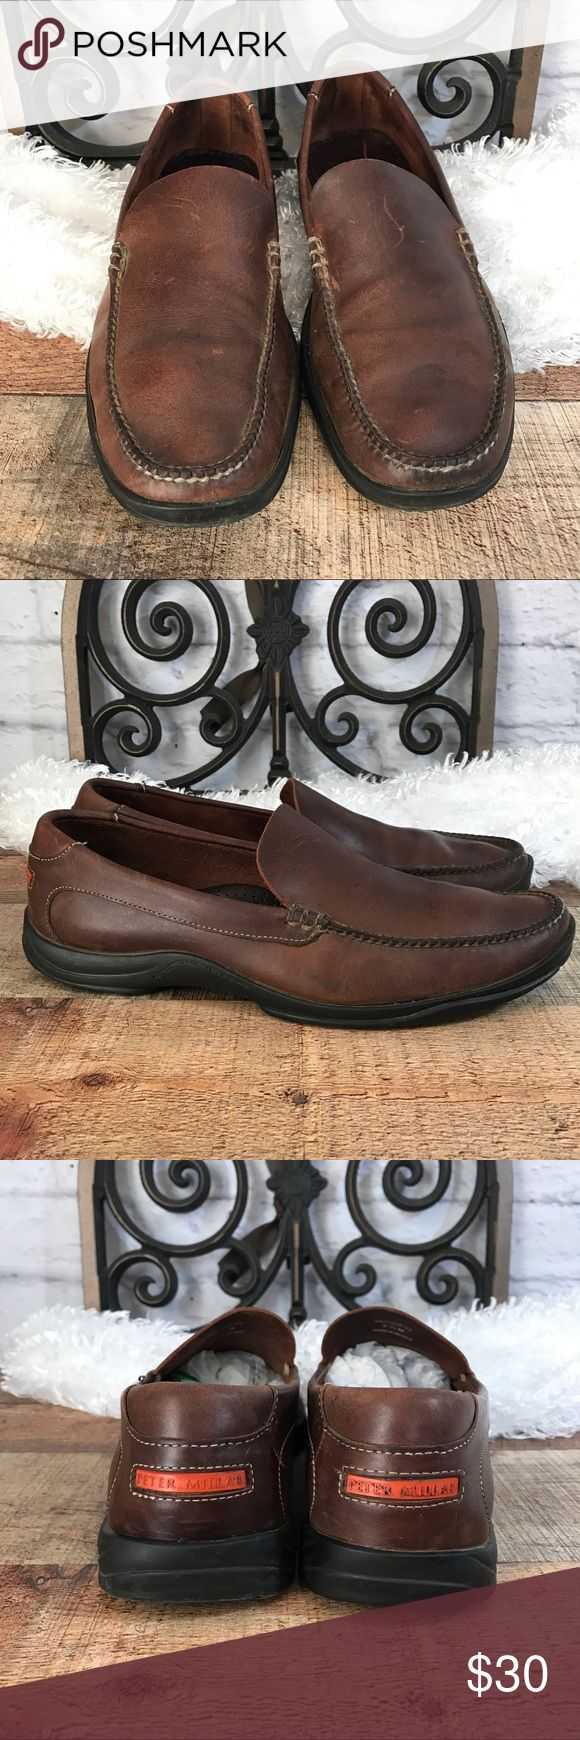 Peter Millar Leather Loafers 9.5 Gently used with no major flaws light wear  Size 9.5 Medium   I ship Monday through Saturday weather permitting Thank you. Peter Millar Shoes Loafers & Slip-Ons